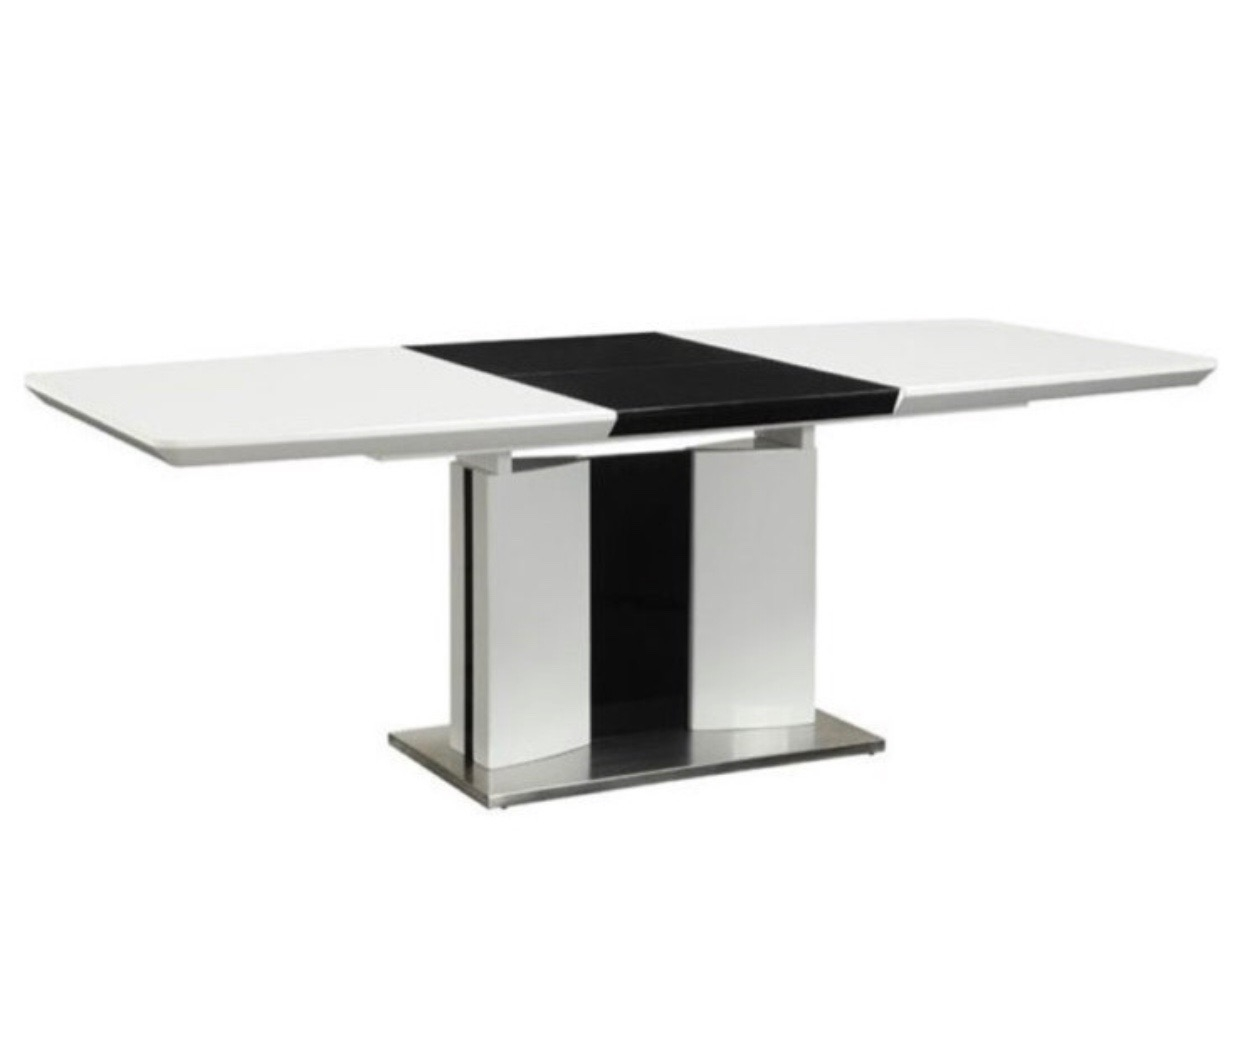 The table I purchased!